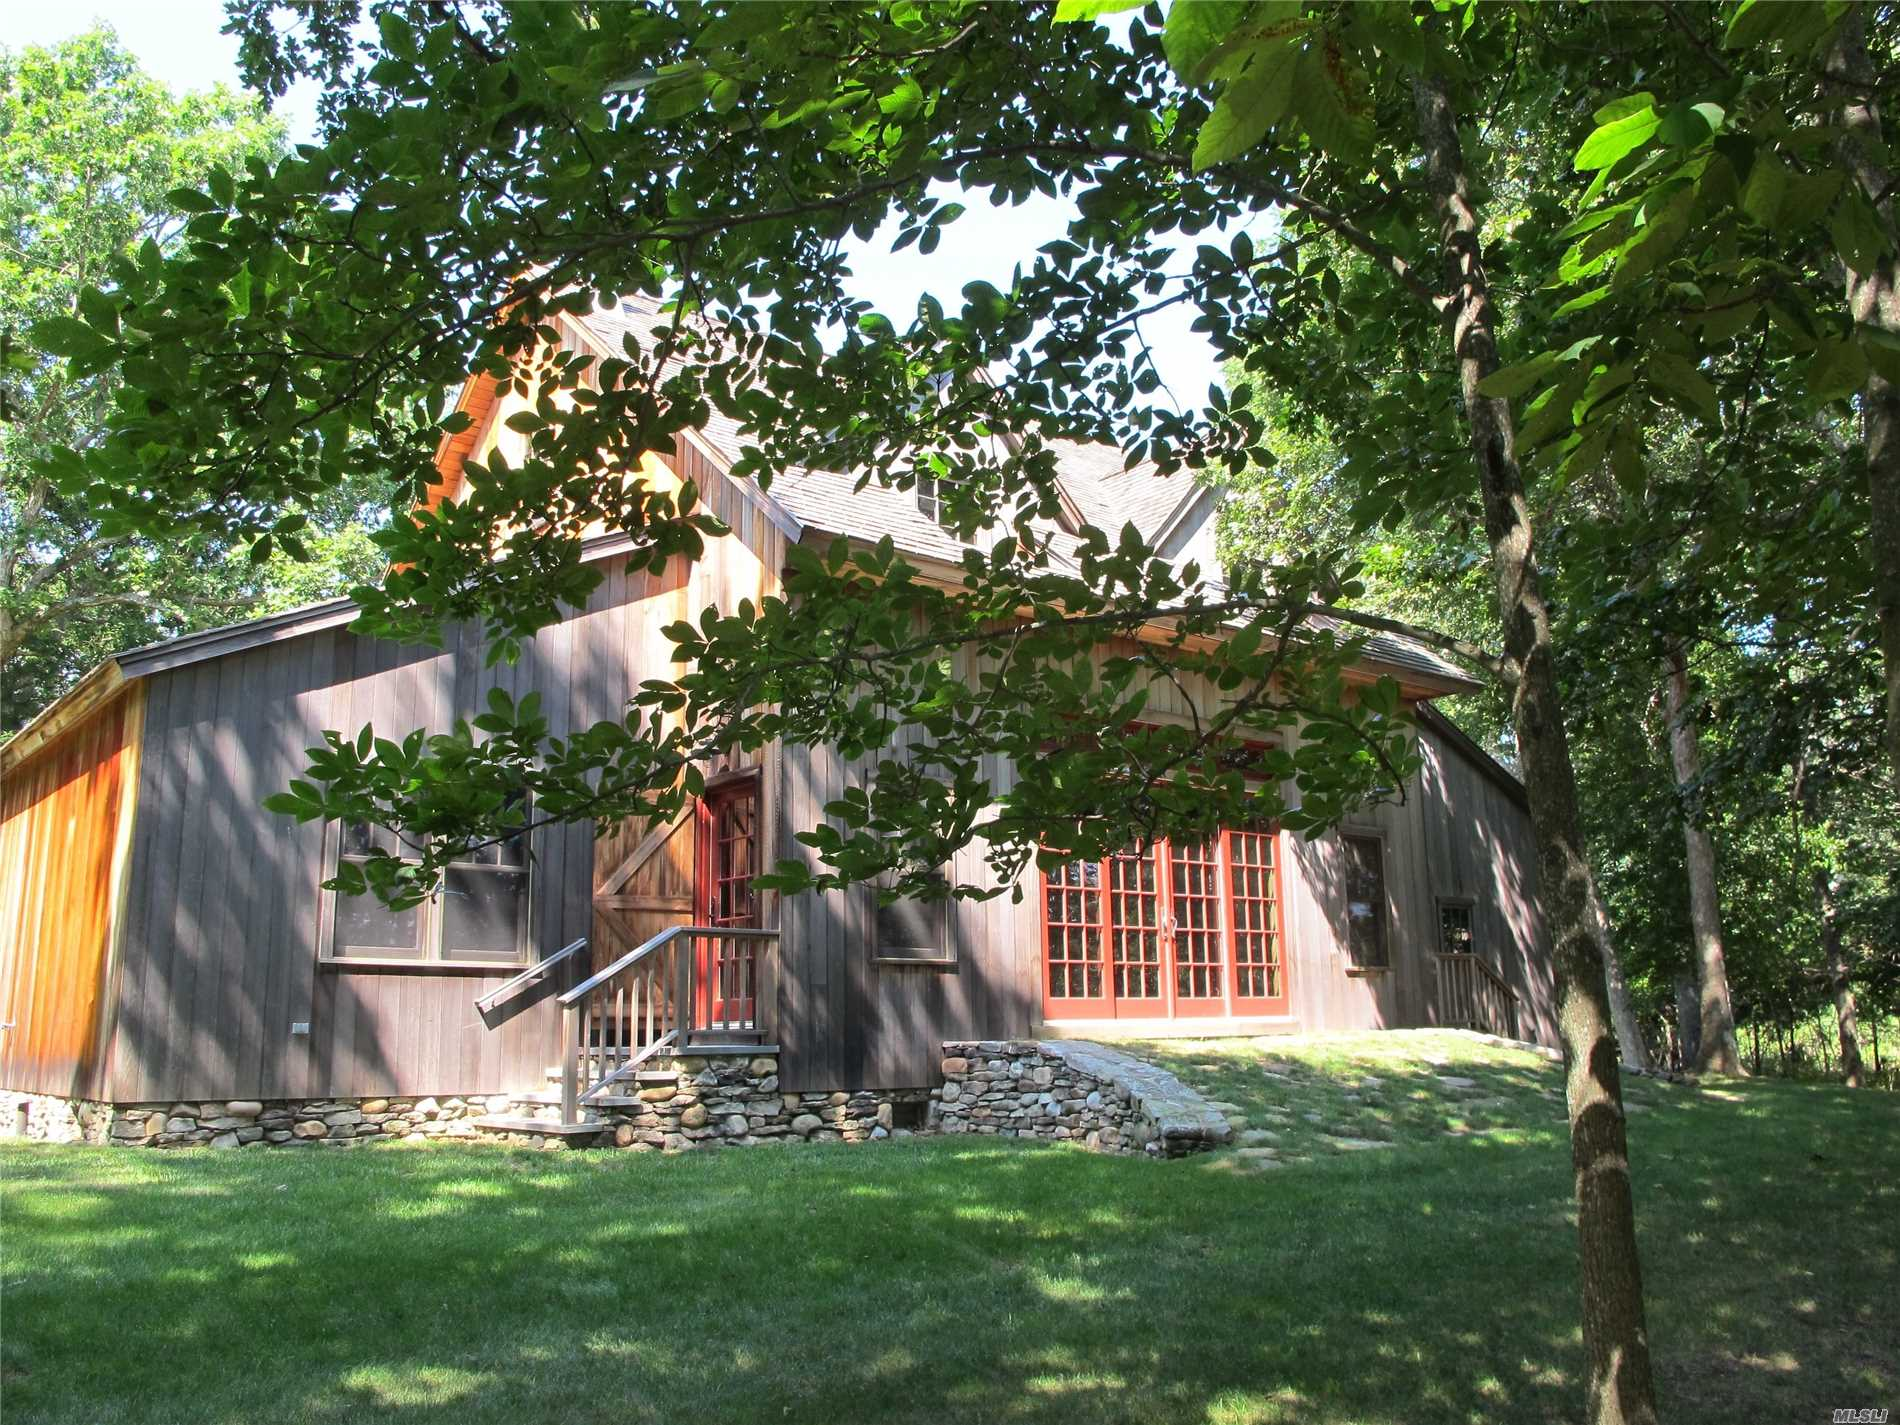 Privacy And Views Abound With This Beautiful Reproduction Of 19th Century Waterfront Barn. Wonderful Open Great Room With Streaming Light From Large Doors And Transom Windows. Mbr Lower Level, Bath, Grand Staircase To Sleeping Loft And Sitting Area. Also Available Other Dates